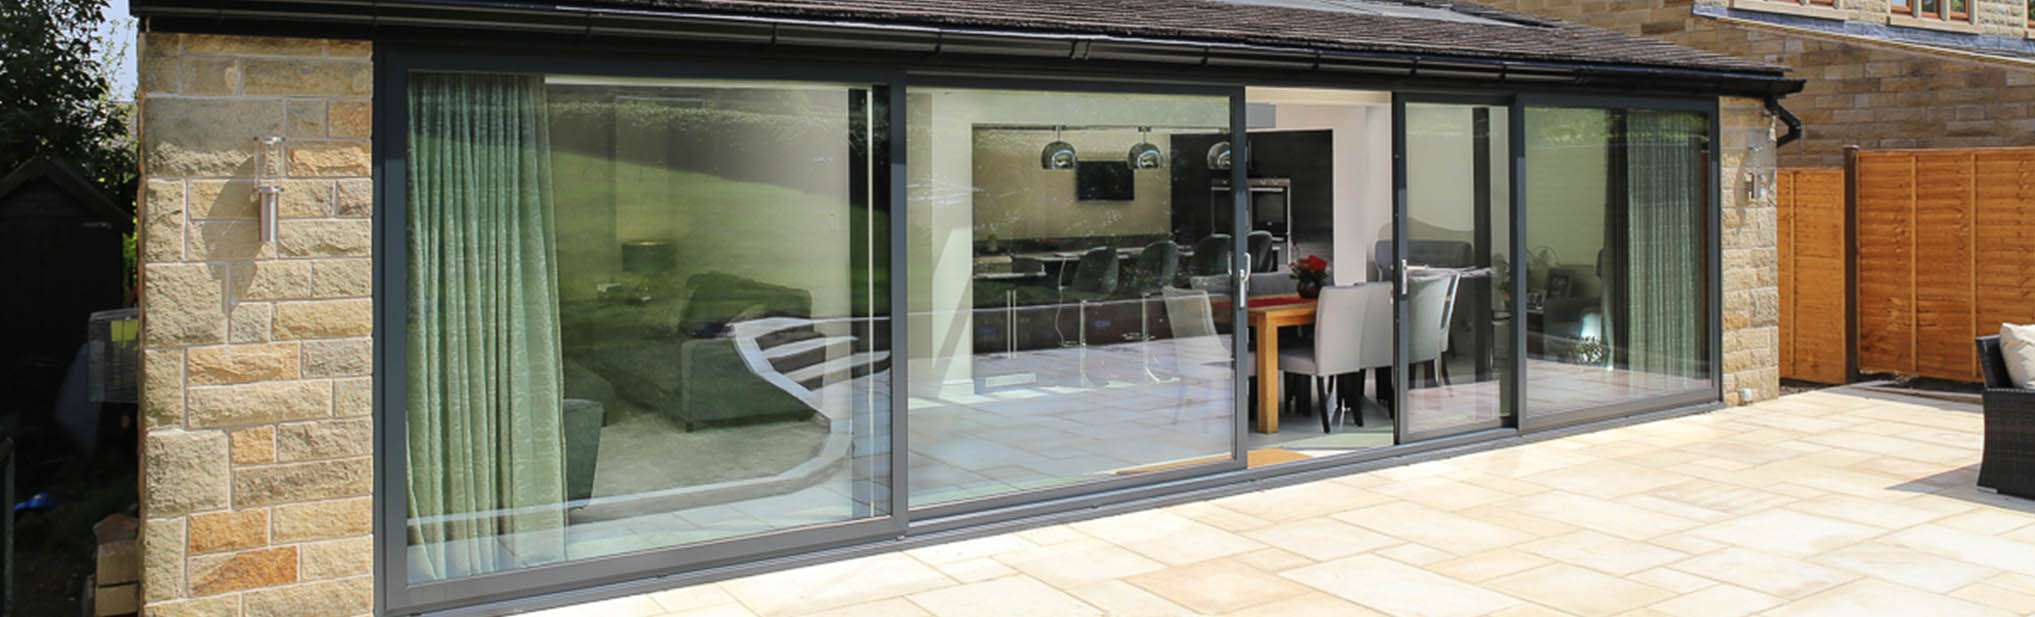 Sliding Doors Save Space And Have Increased Energy Efficiency